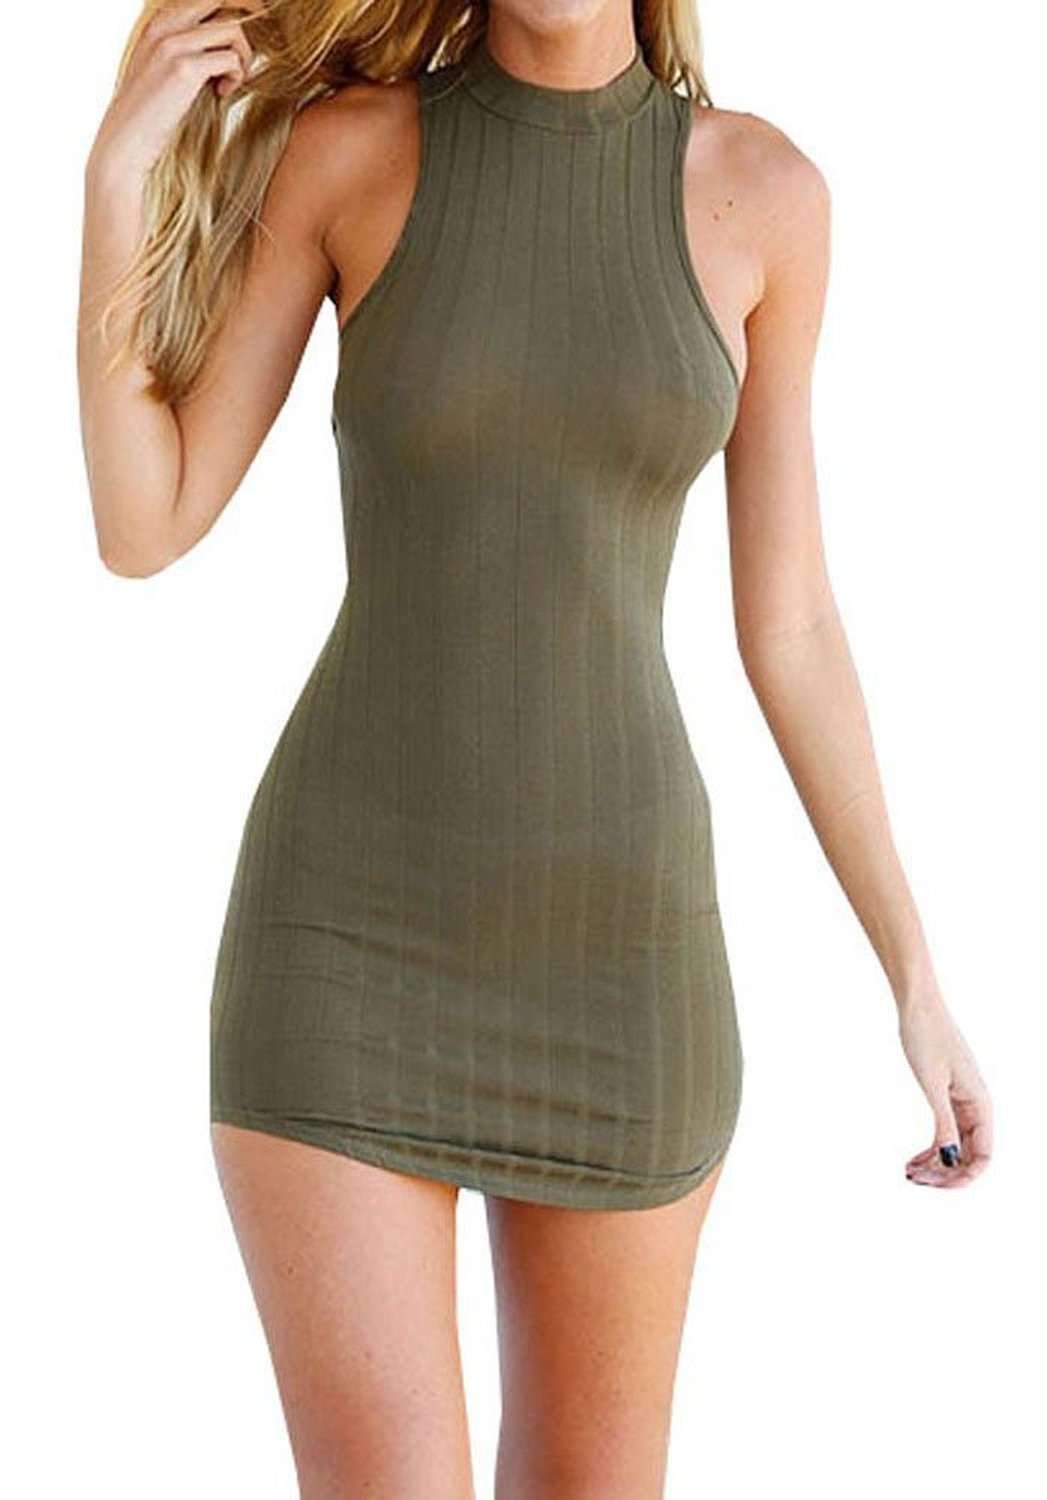 Bigyonger Women's Summer Halter Sleeveless Backless Sexy Mini Bandage Dress: Amazon Fashion